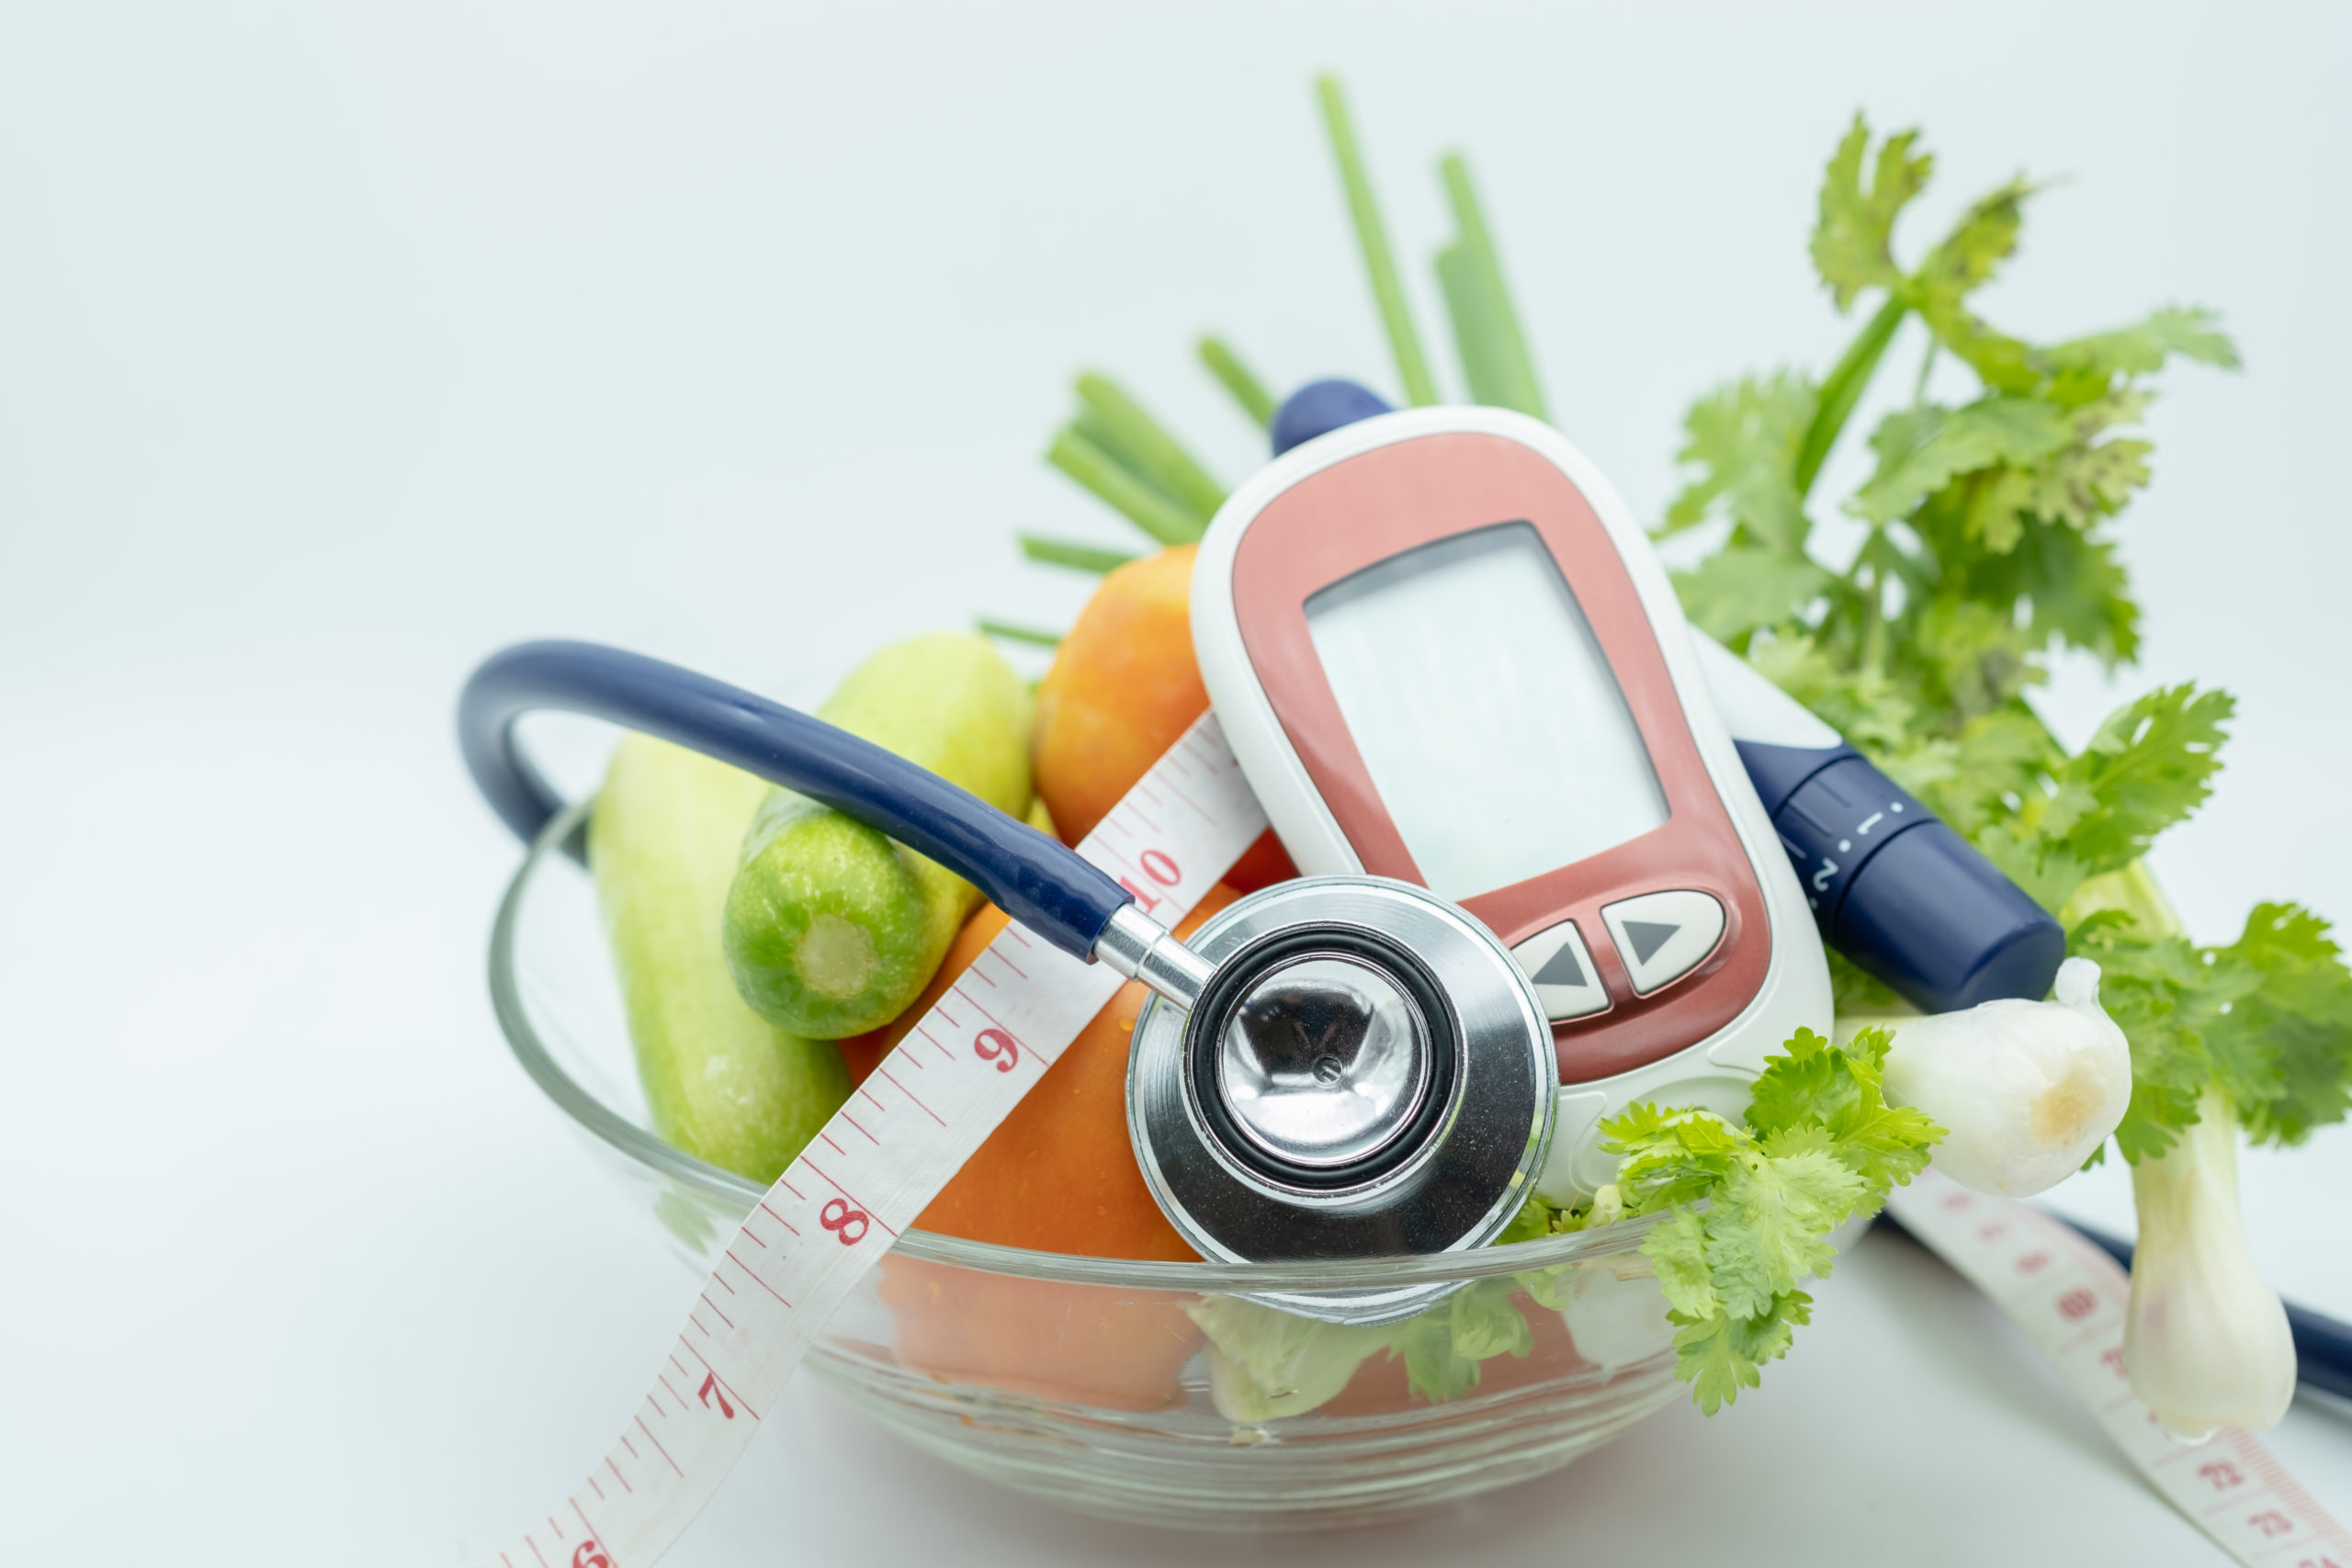 fruits, vegetables, diabetes glucometer, and other items